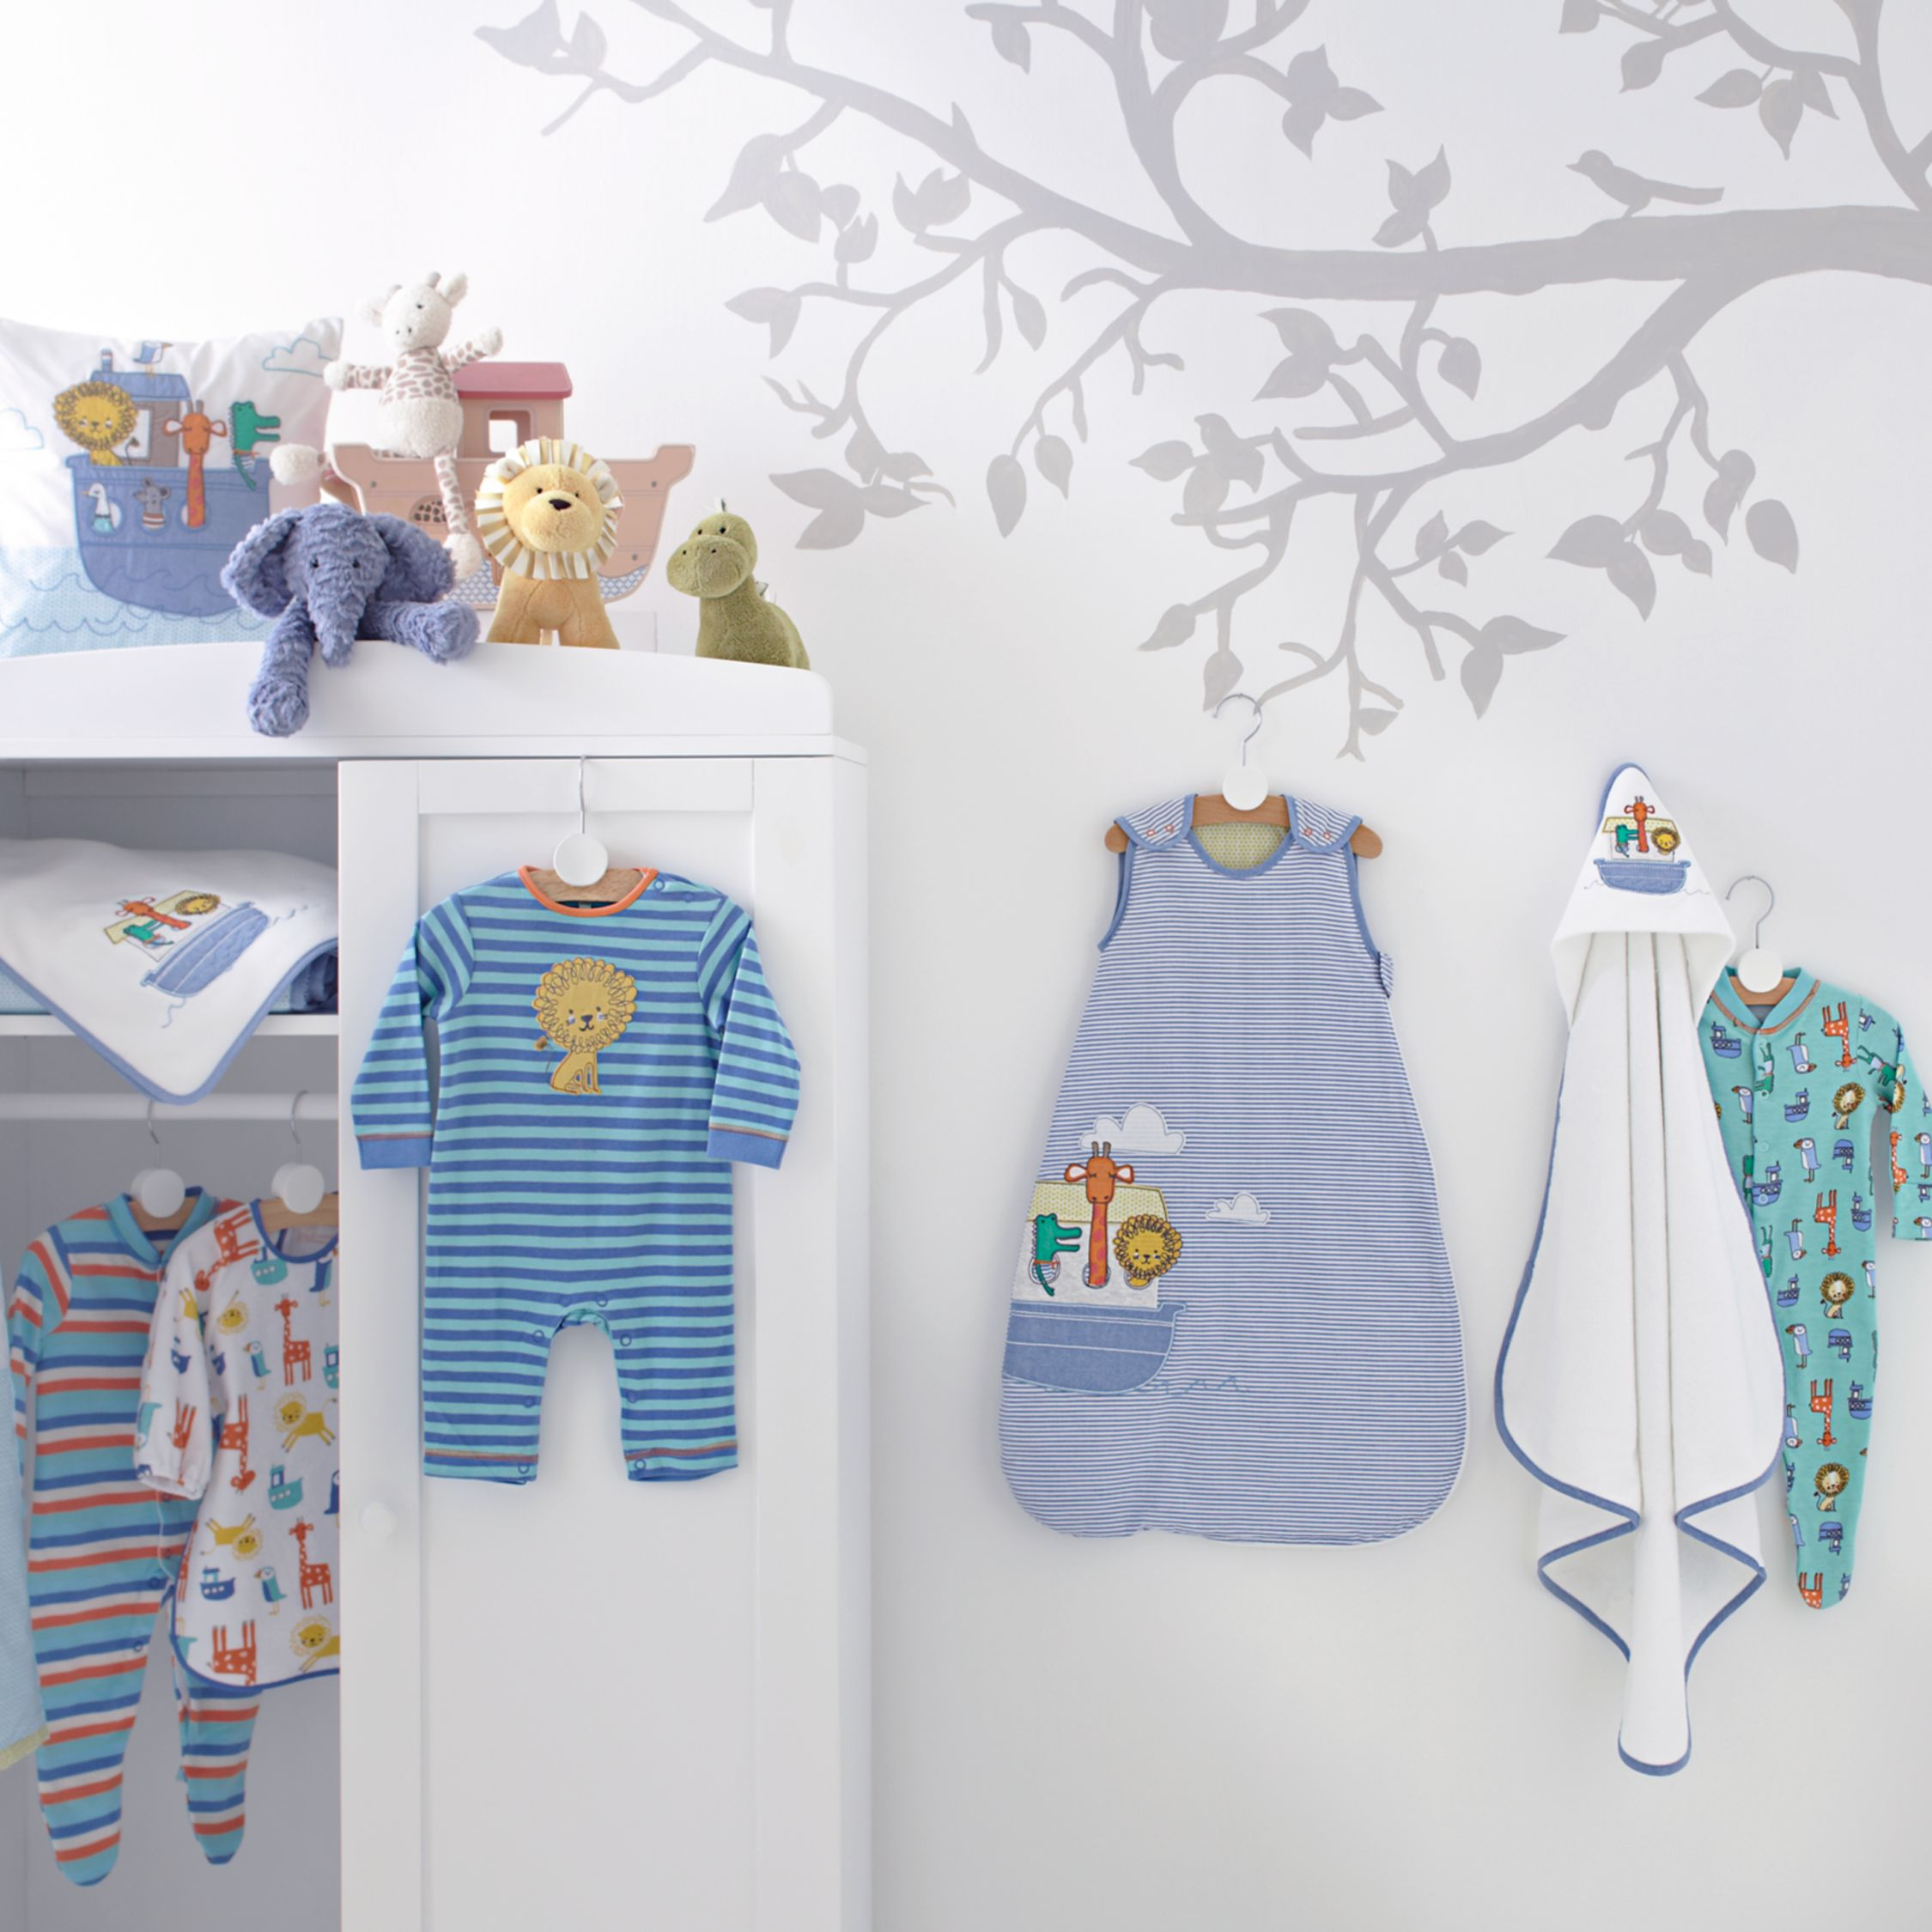 Noah's Ark Babywear & Nursery Co-ordinated Range